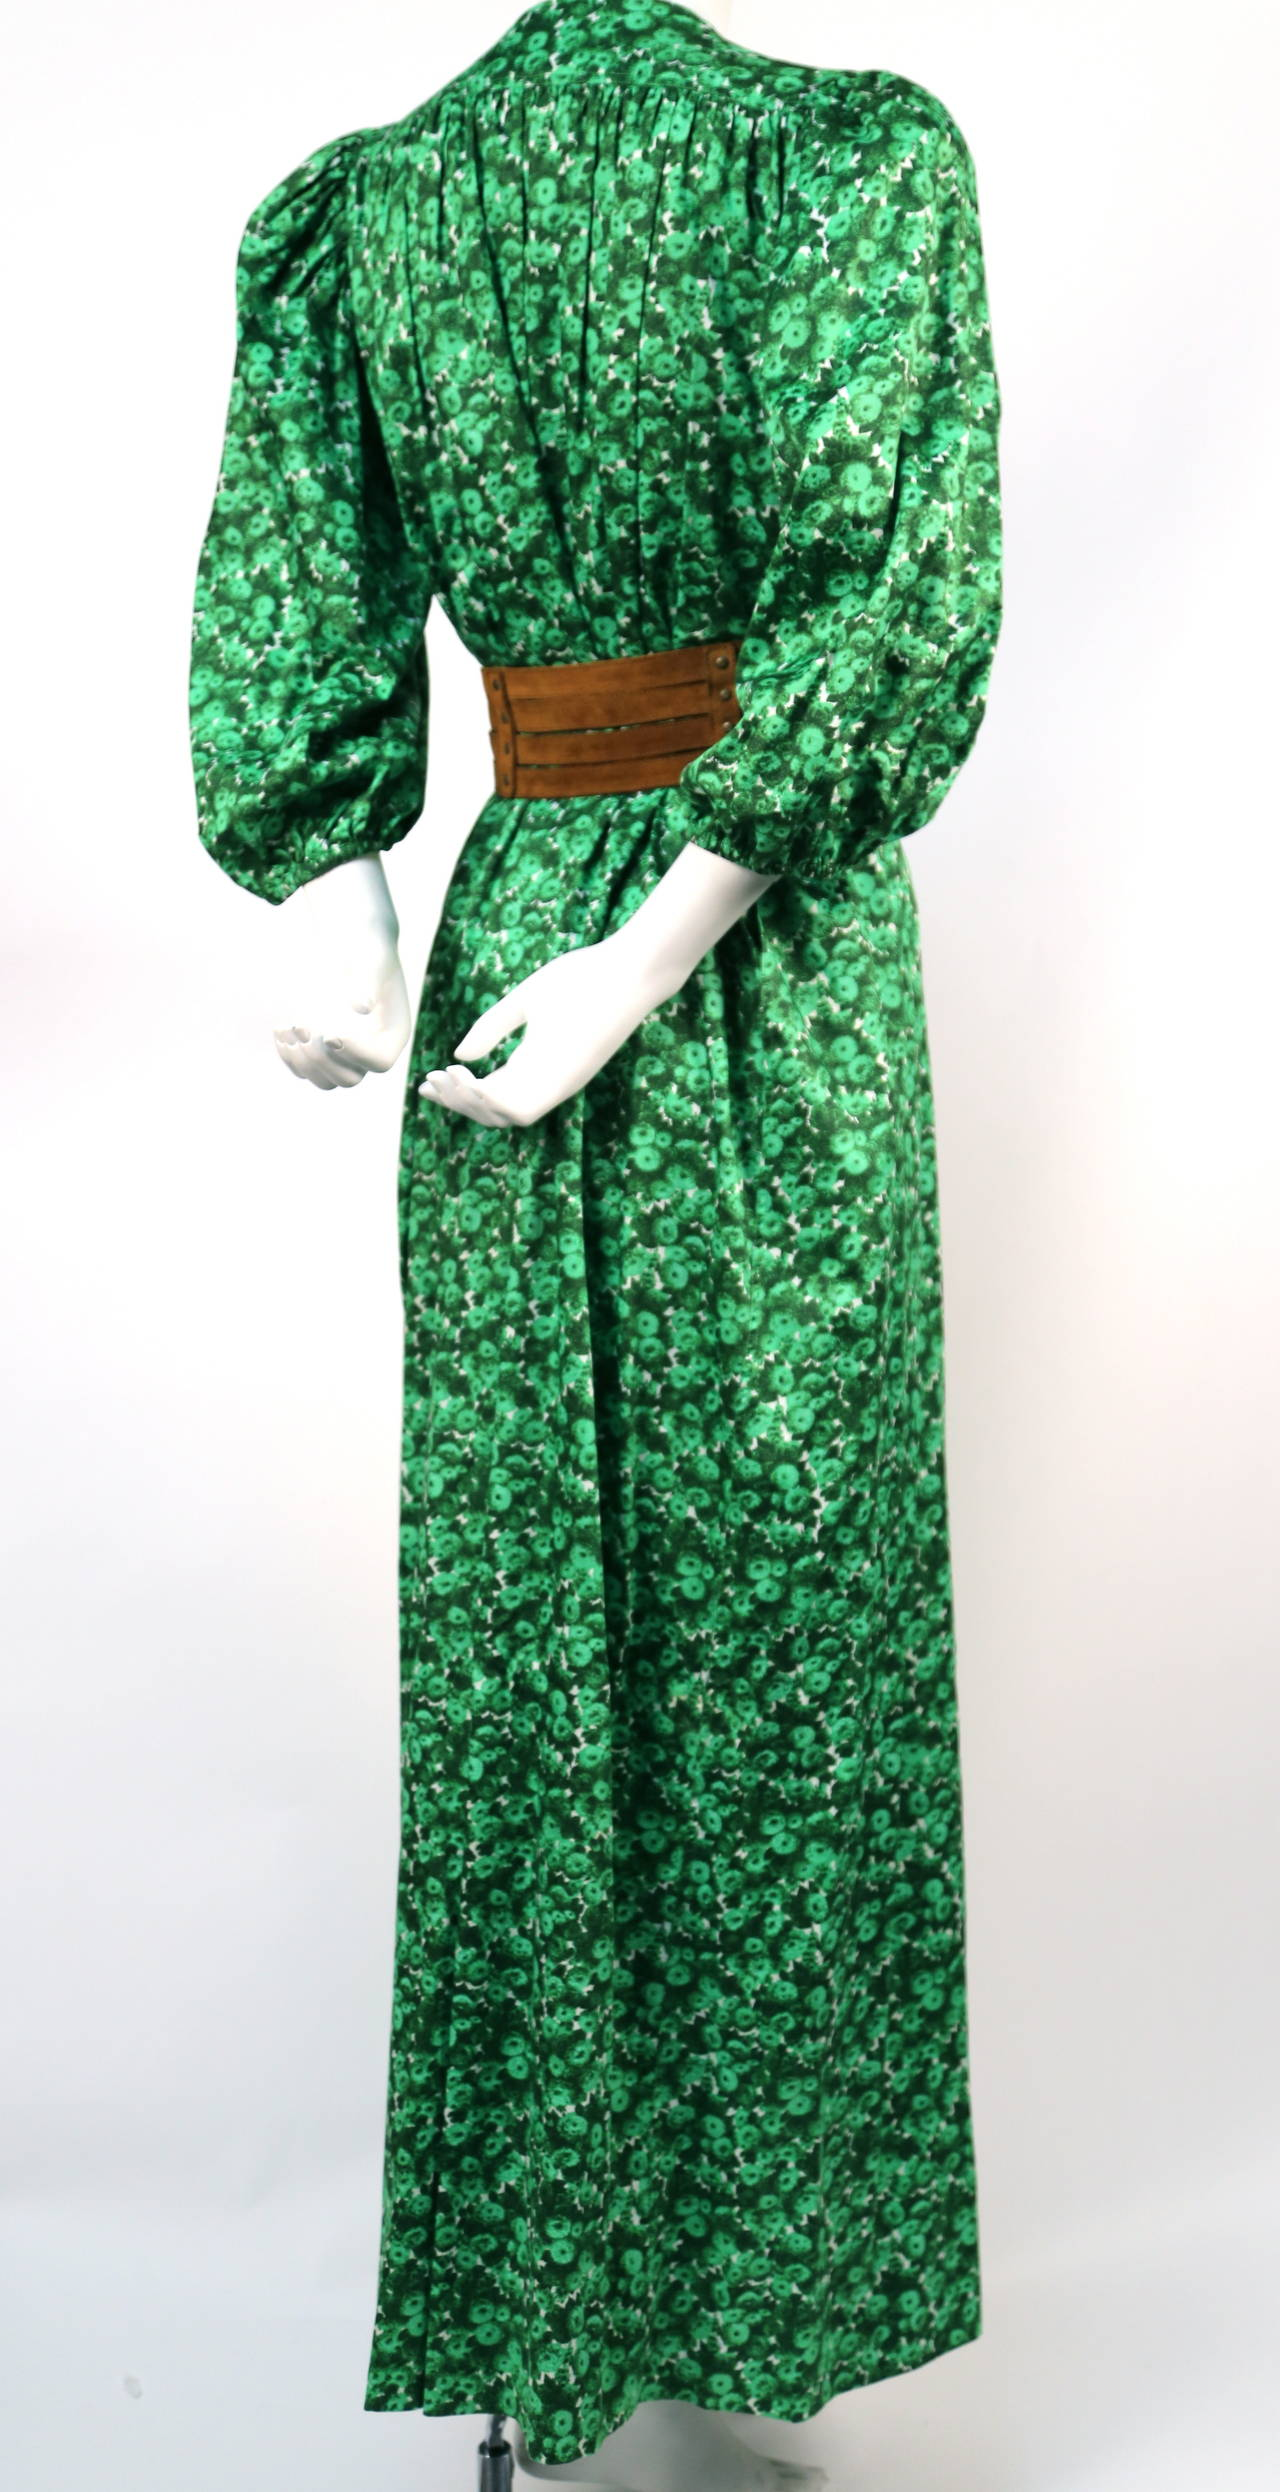 1970's YVES SAINT LAURENT green floral cotton dress with deep V neckline 4